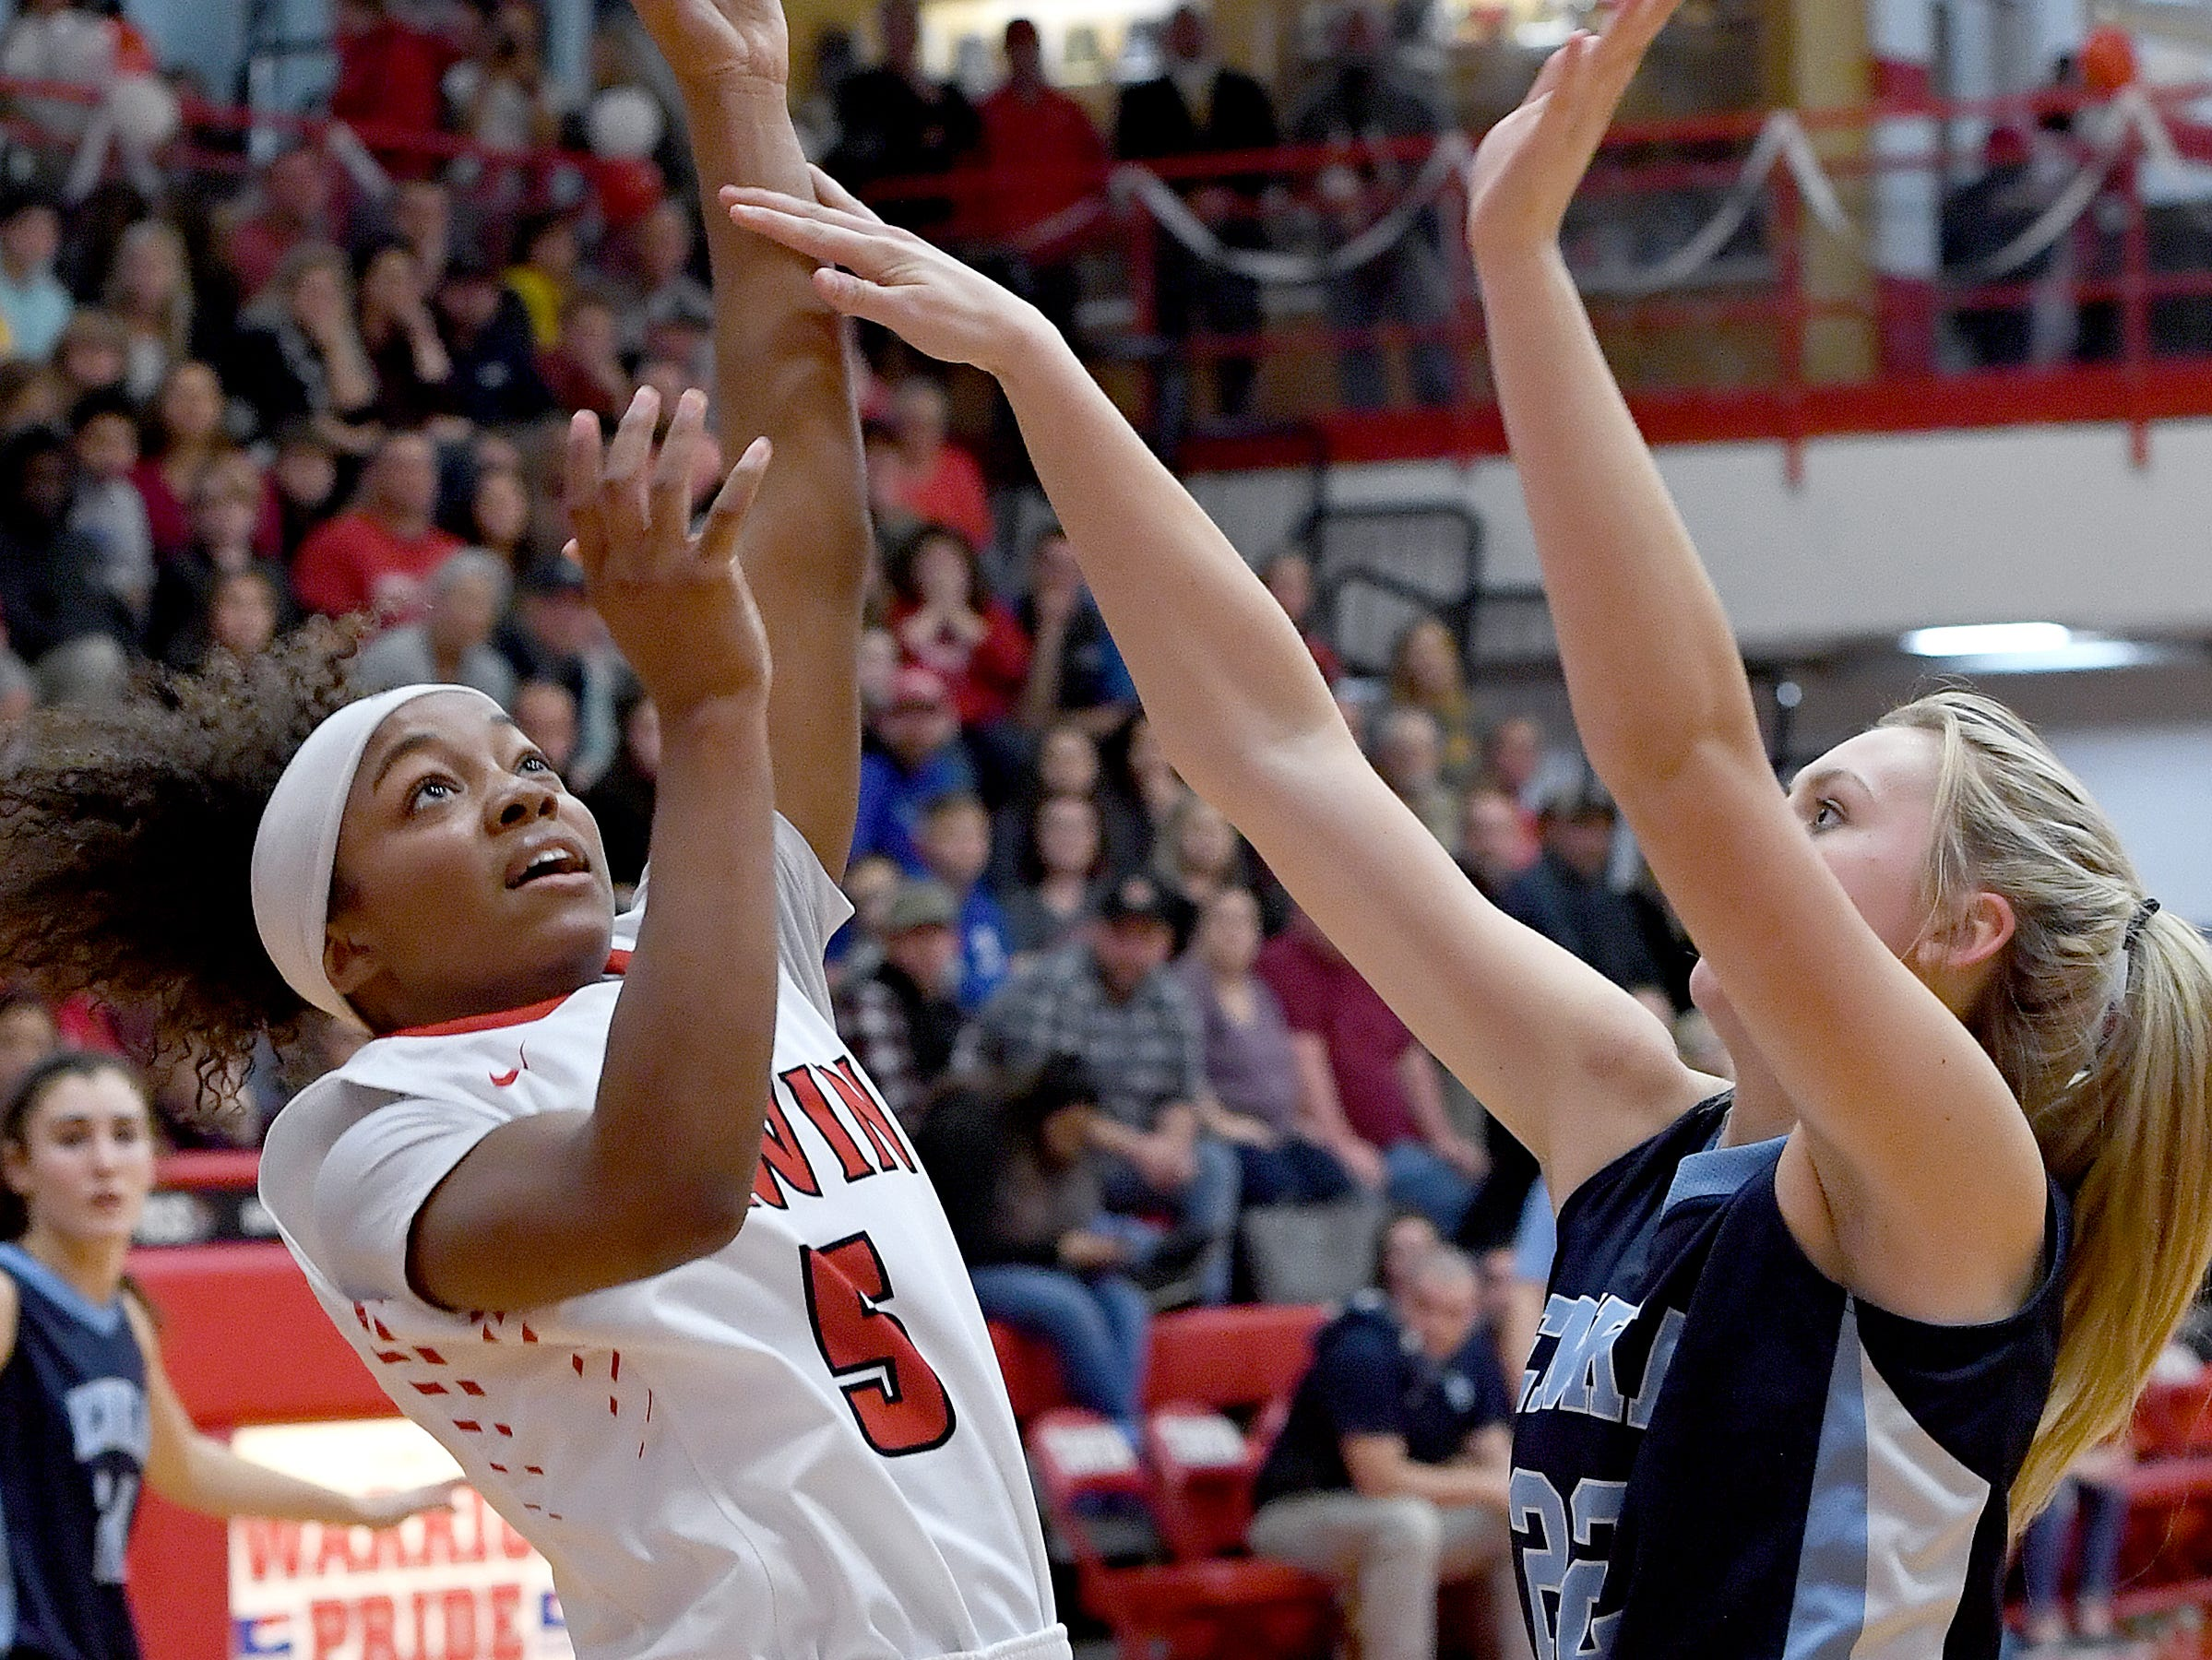 Erwin's Jaia Wilson goes up for a shot against Enka's Mya Smith during their game at Erwin High School on Feb. 8, 2019. The Lady Warriors defeated the Sugar Jets 68-46 to claim the WMAC regular season title.